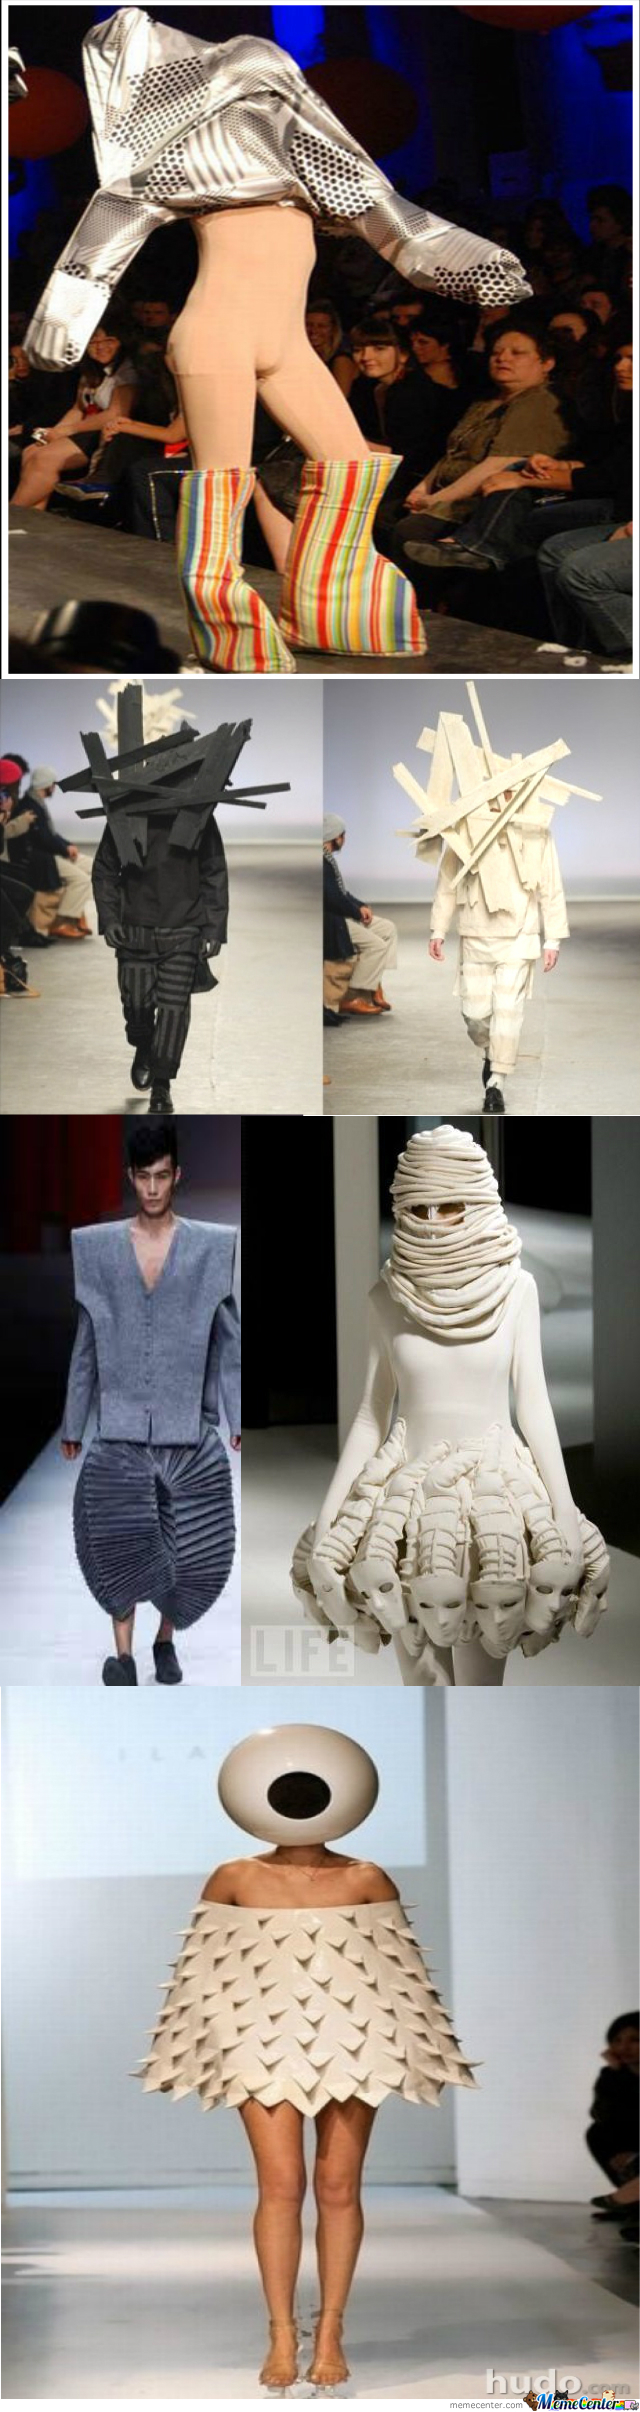 Some Really Strange Clothes